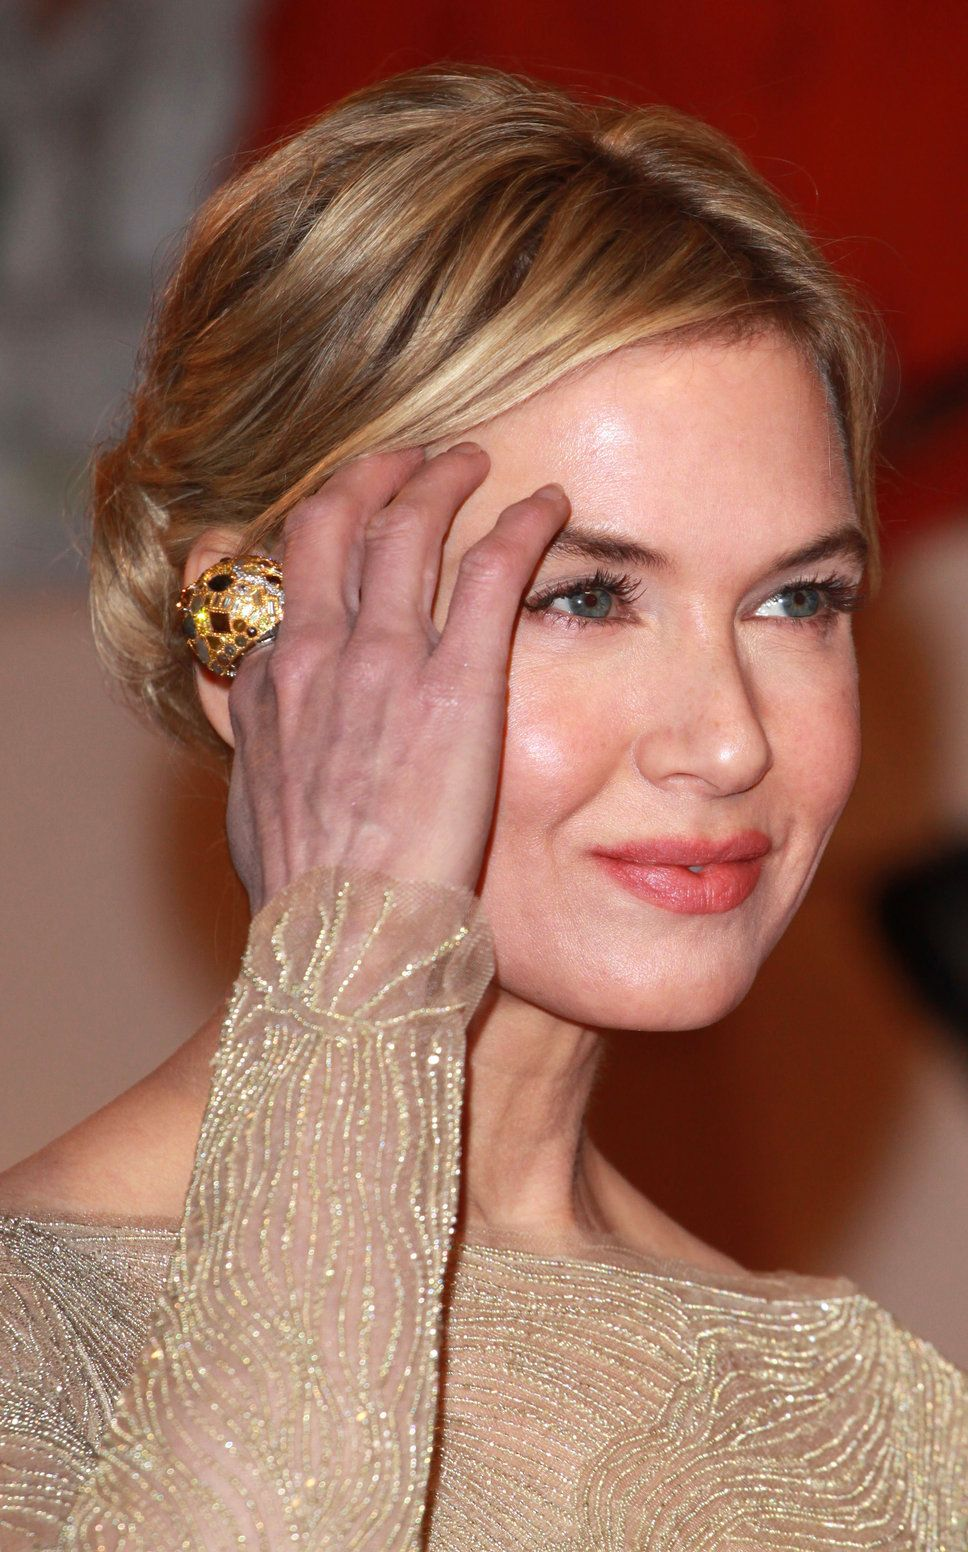 Renee Zellweger Updo Hair Corall Lips Eyes Ring Hand Brillos Sentidos